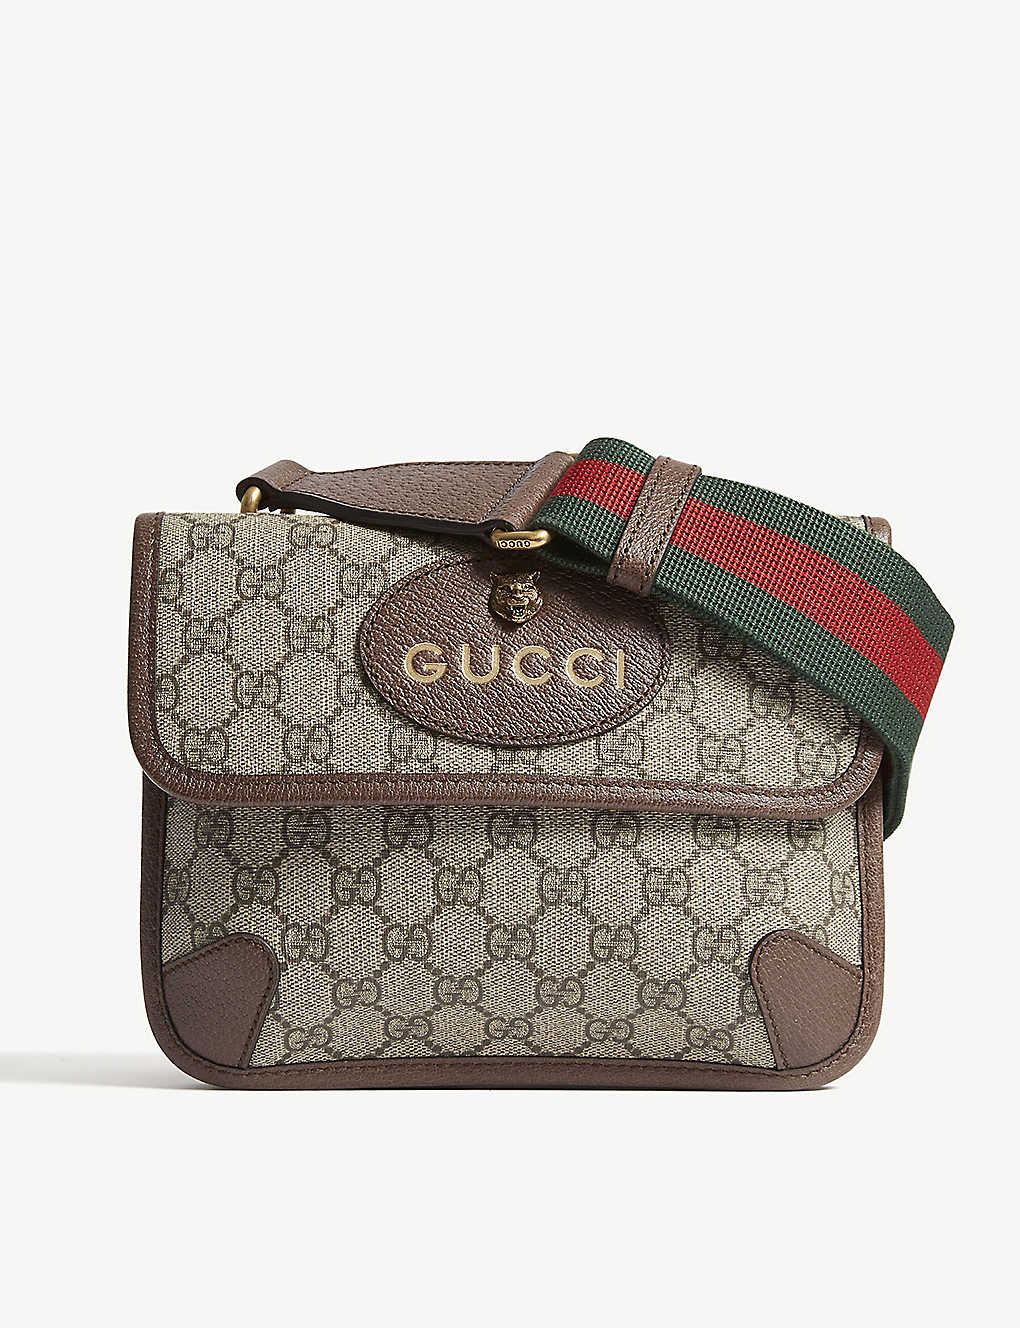 GUCCI - GG Supreme cross-body bag  b121674f2b61d